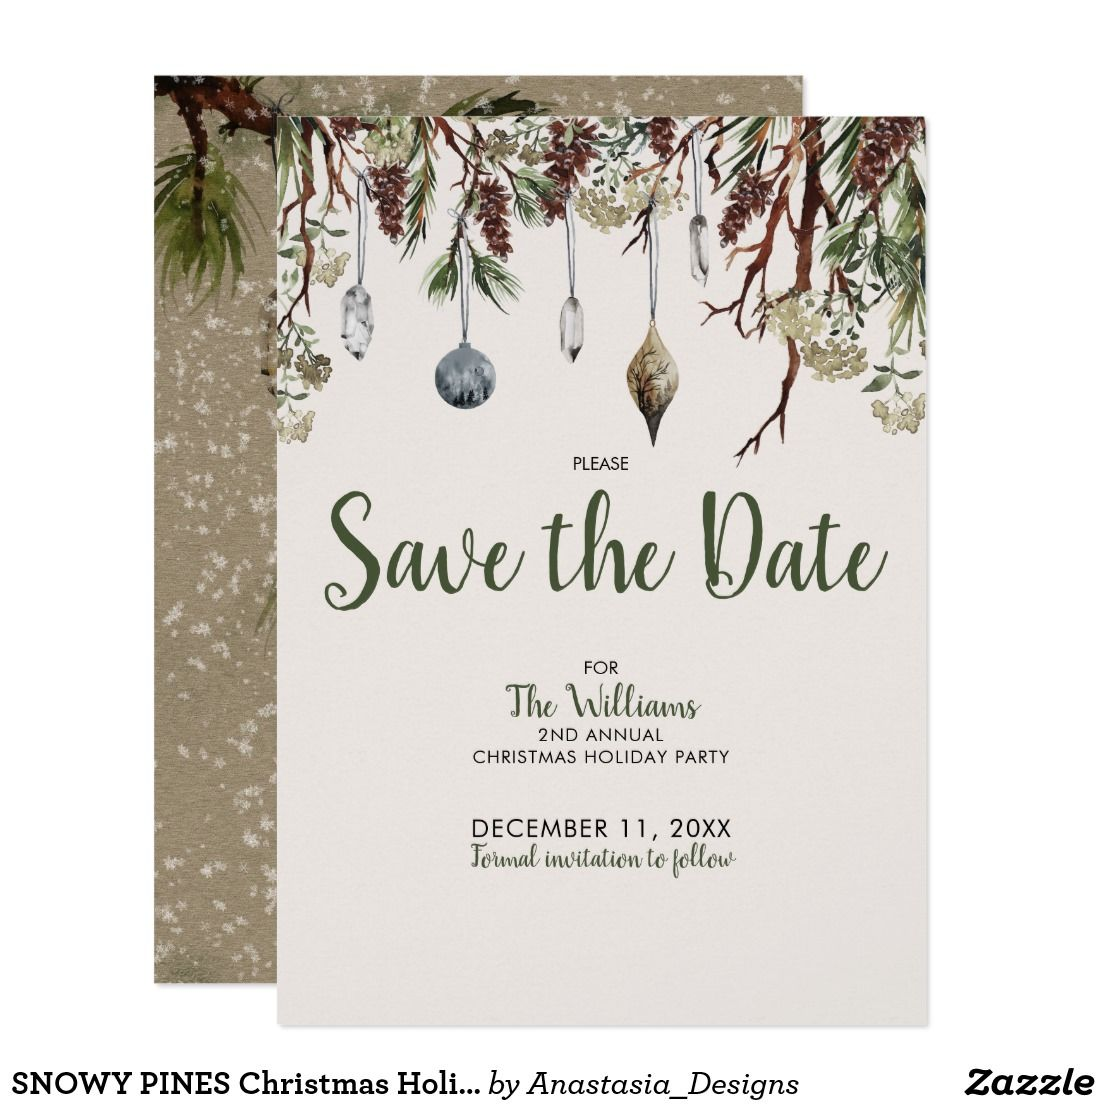 snowy pines christmas holiday party save the date invitation